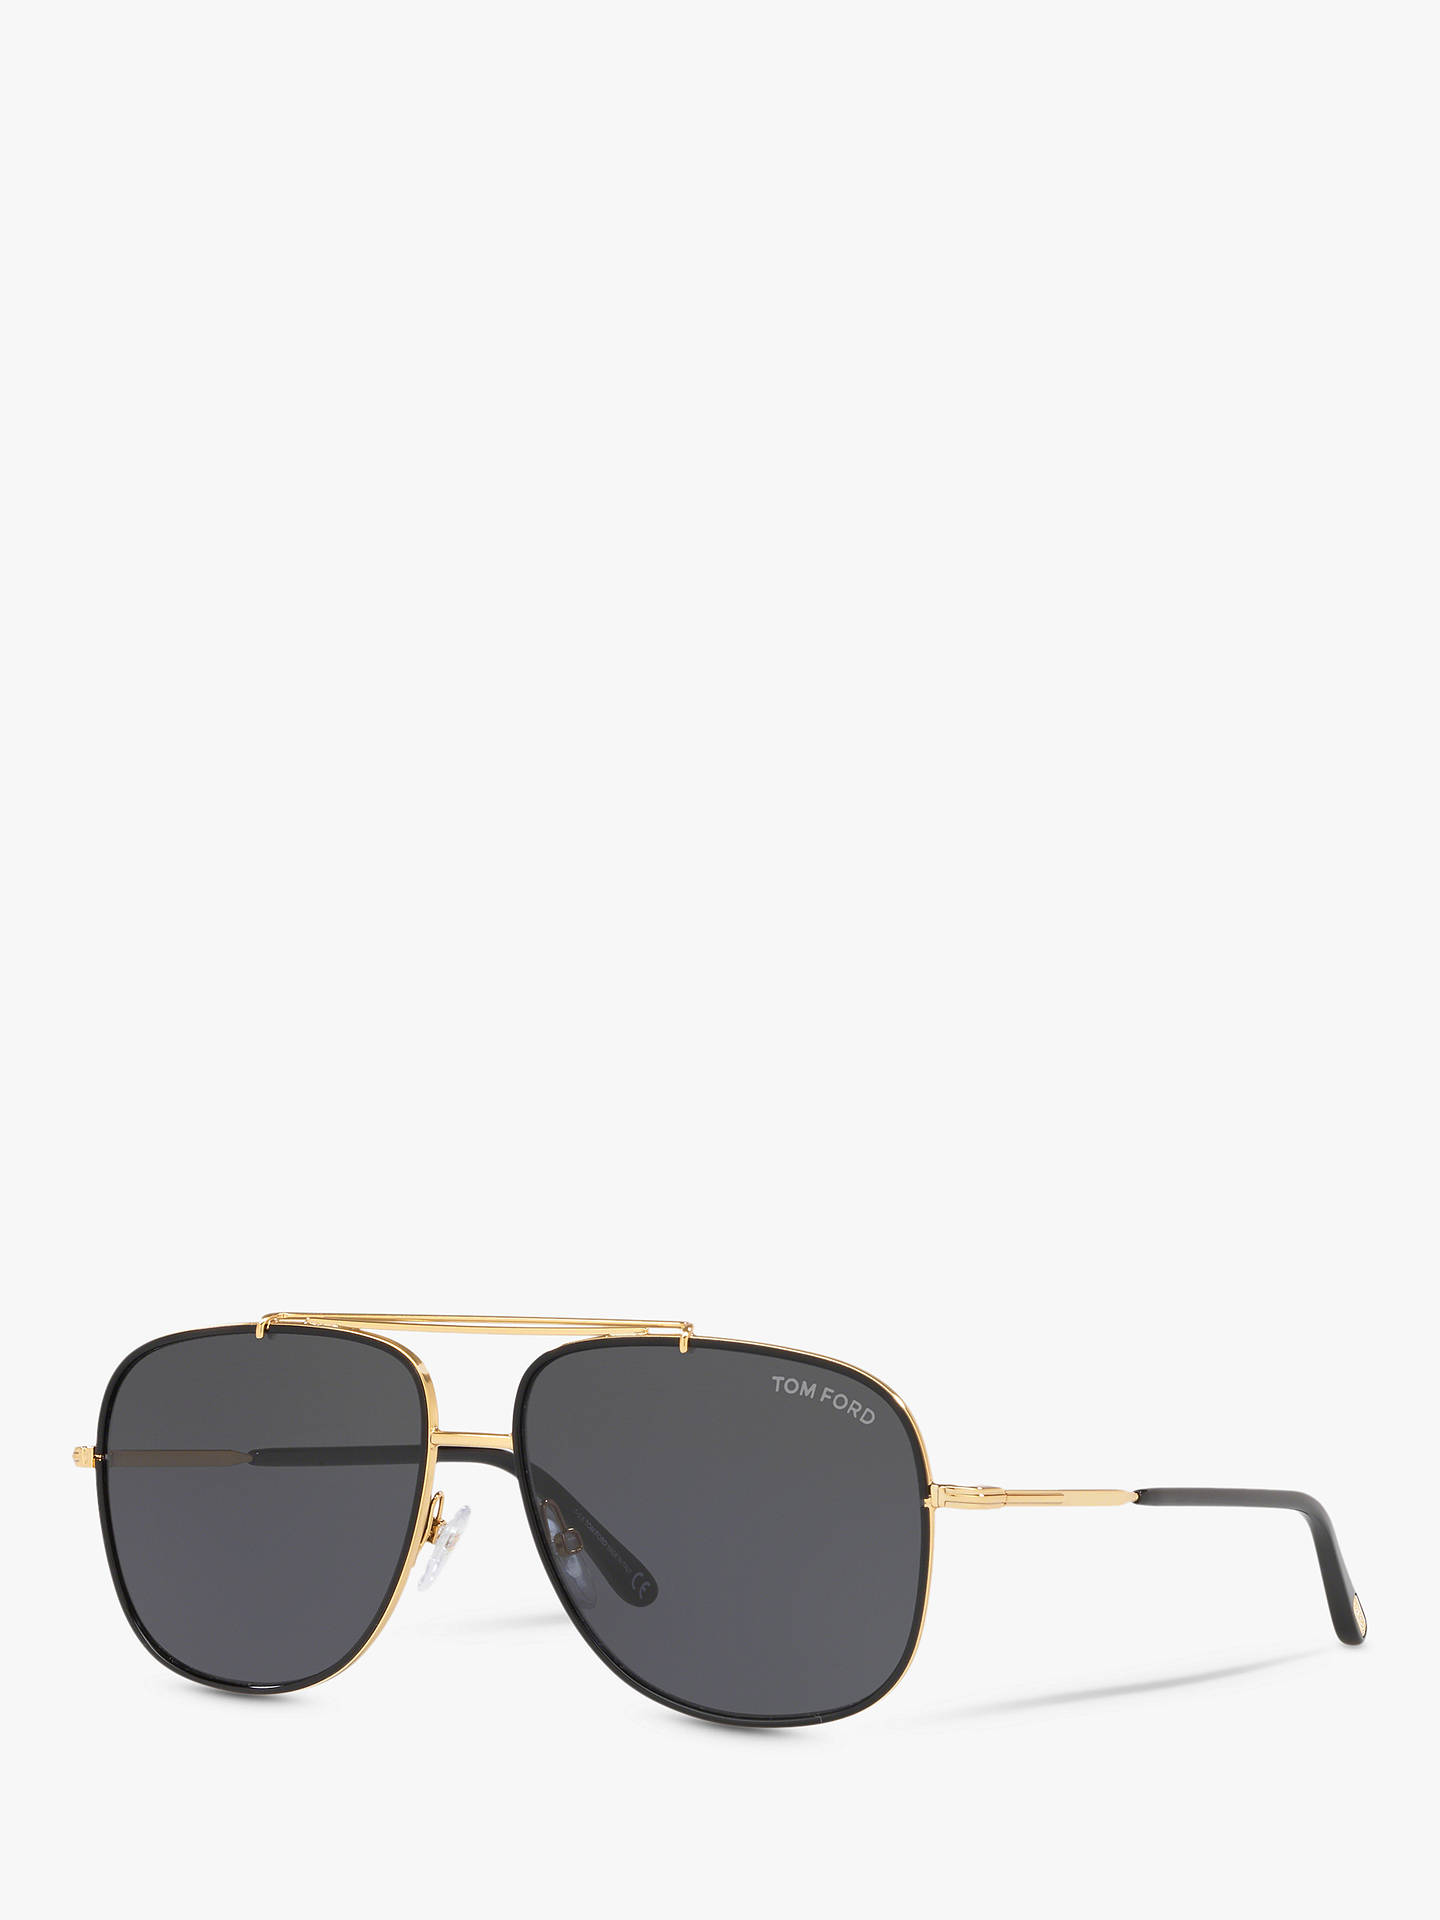 28b76f7a2664 TOM FORD FT0693 Men s Benton Square Sunglasses at John Lewis   Partners